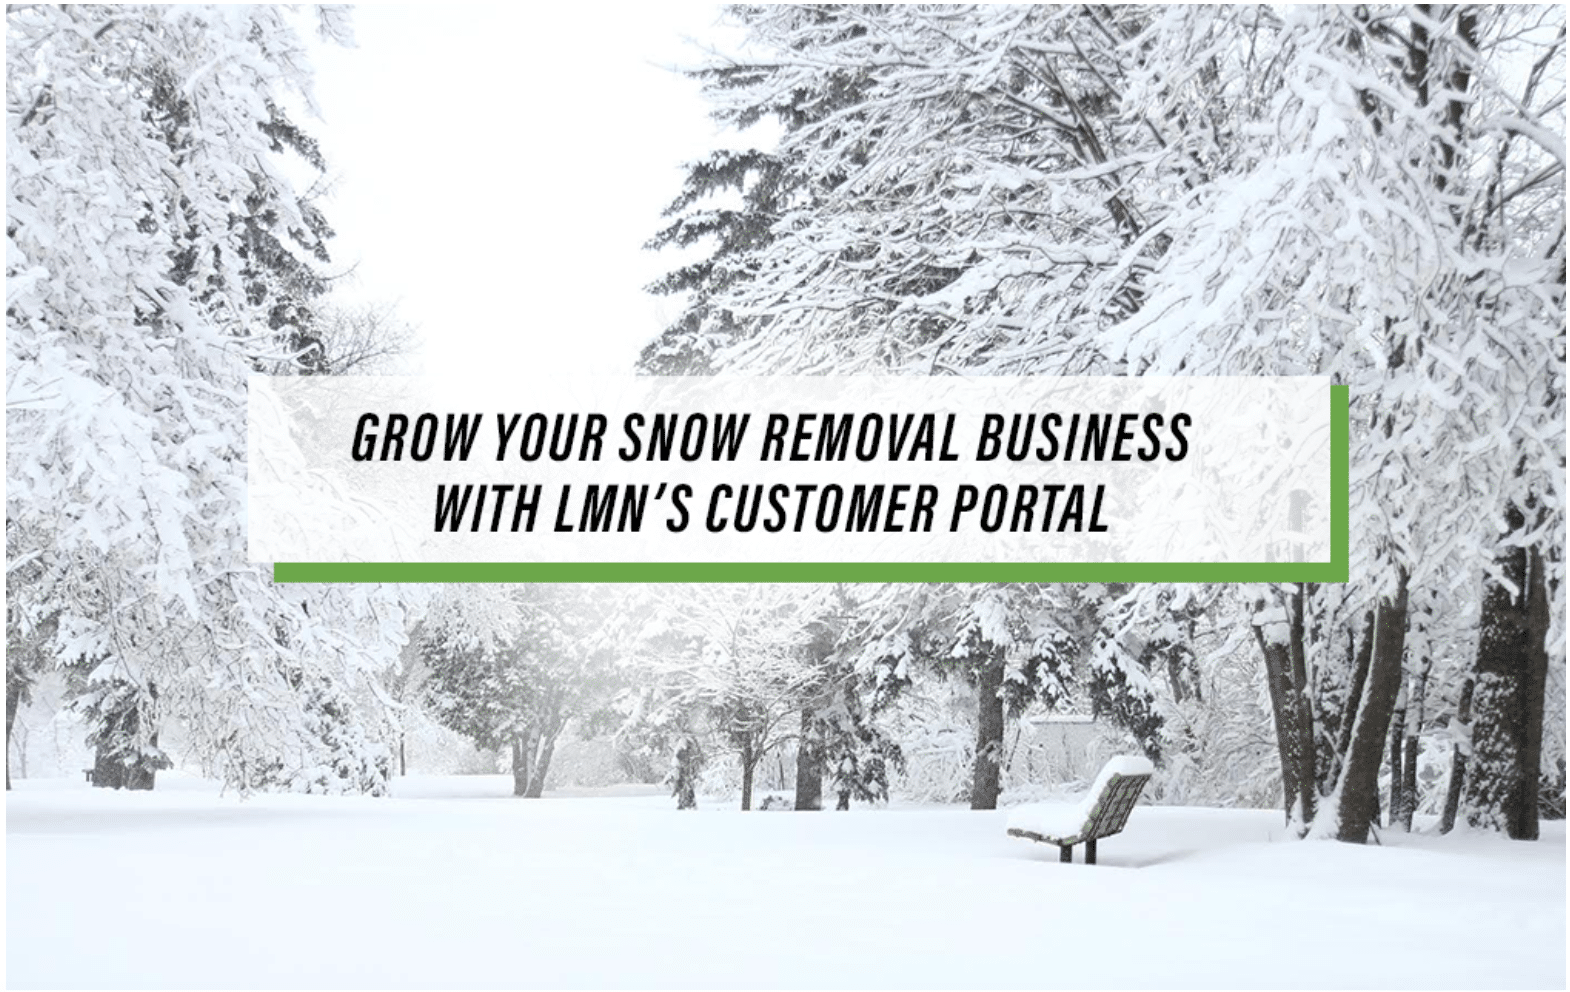 customer portal for snow removal business